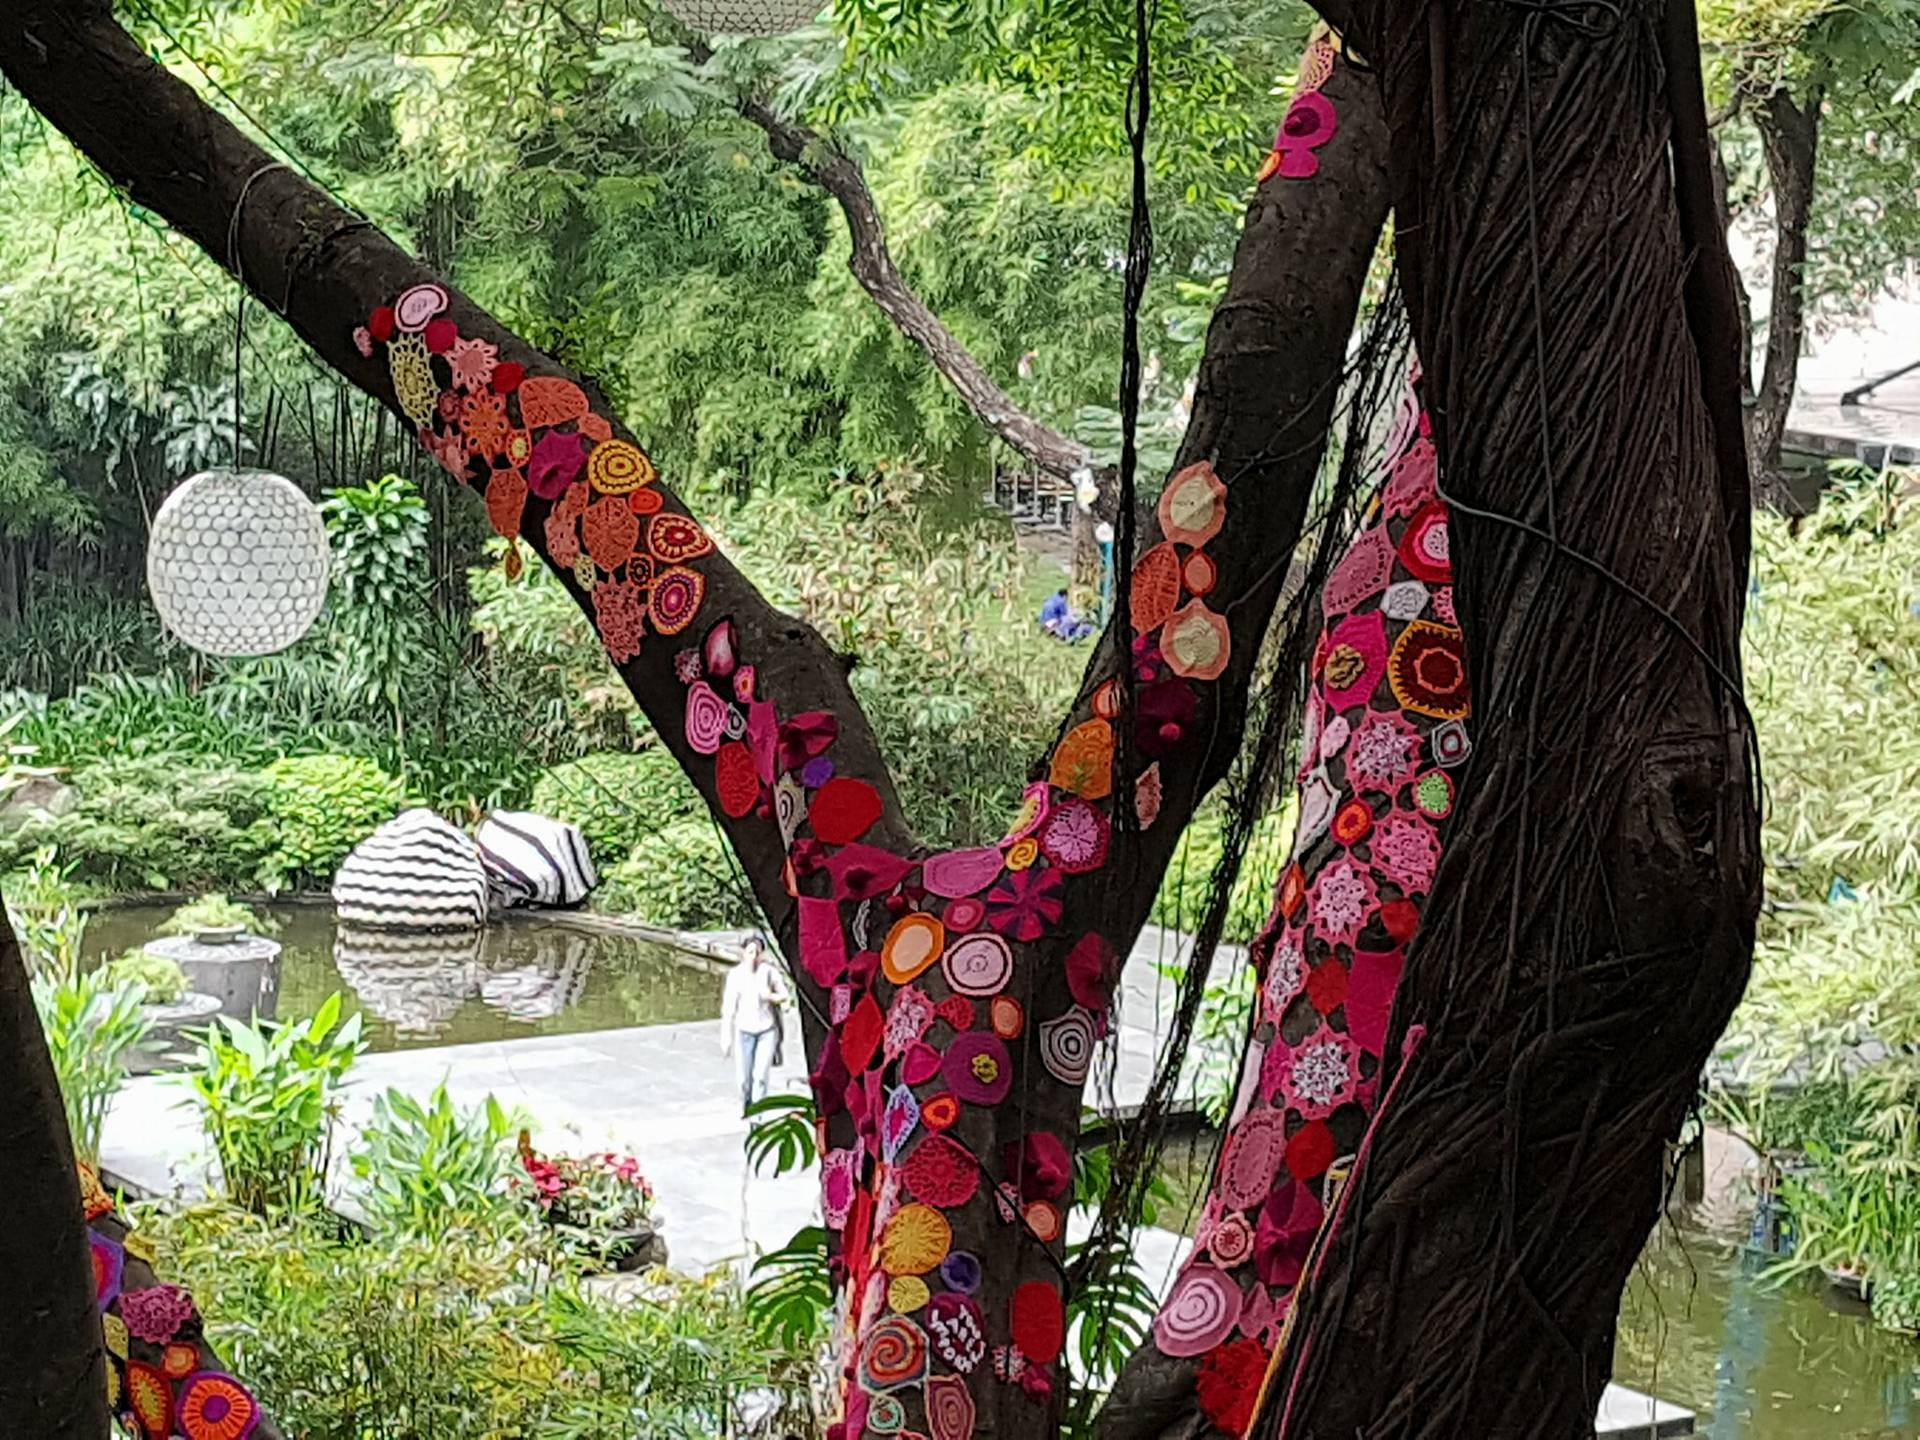 doilies on branches